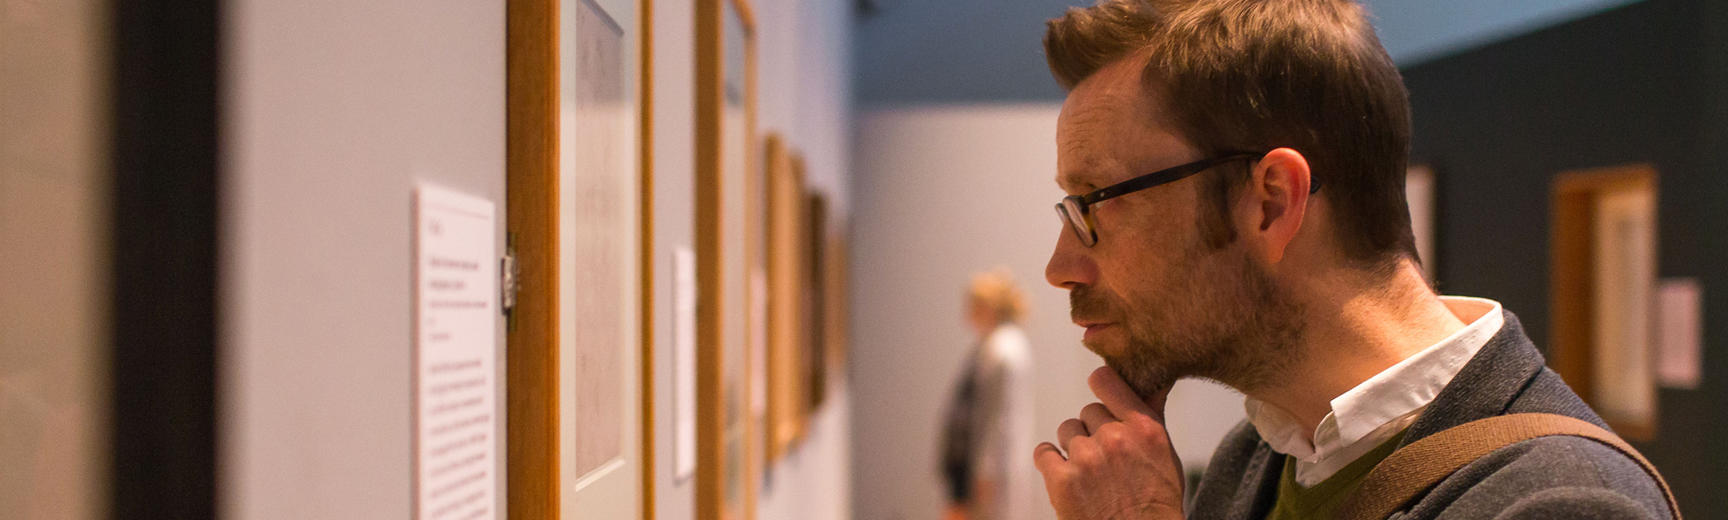 A man takes a closer look at an artwork on display on a gallery wall